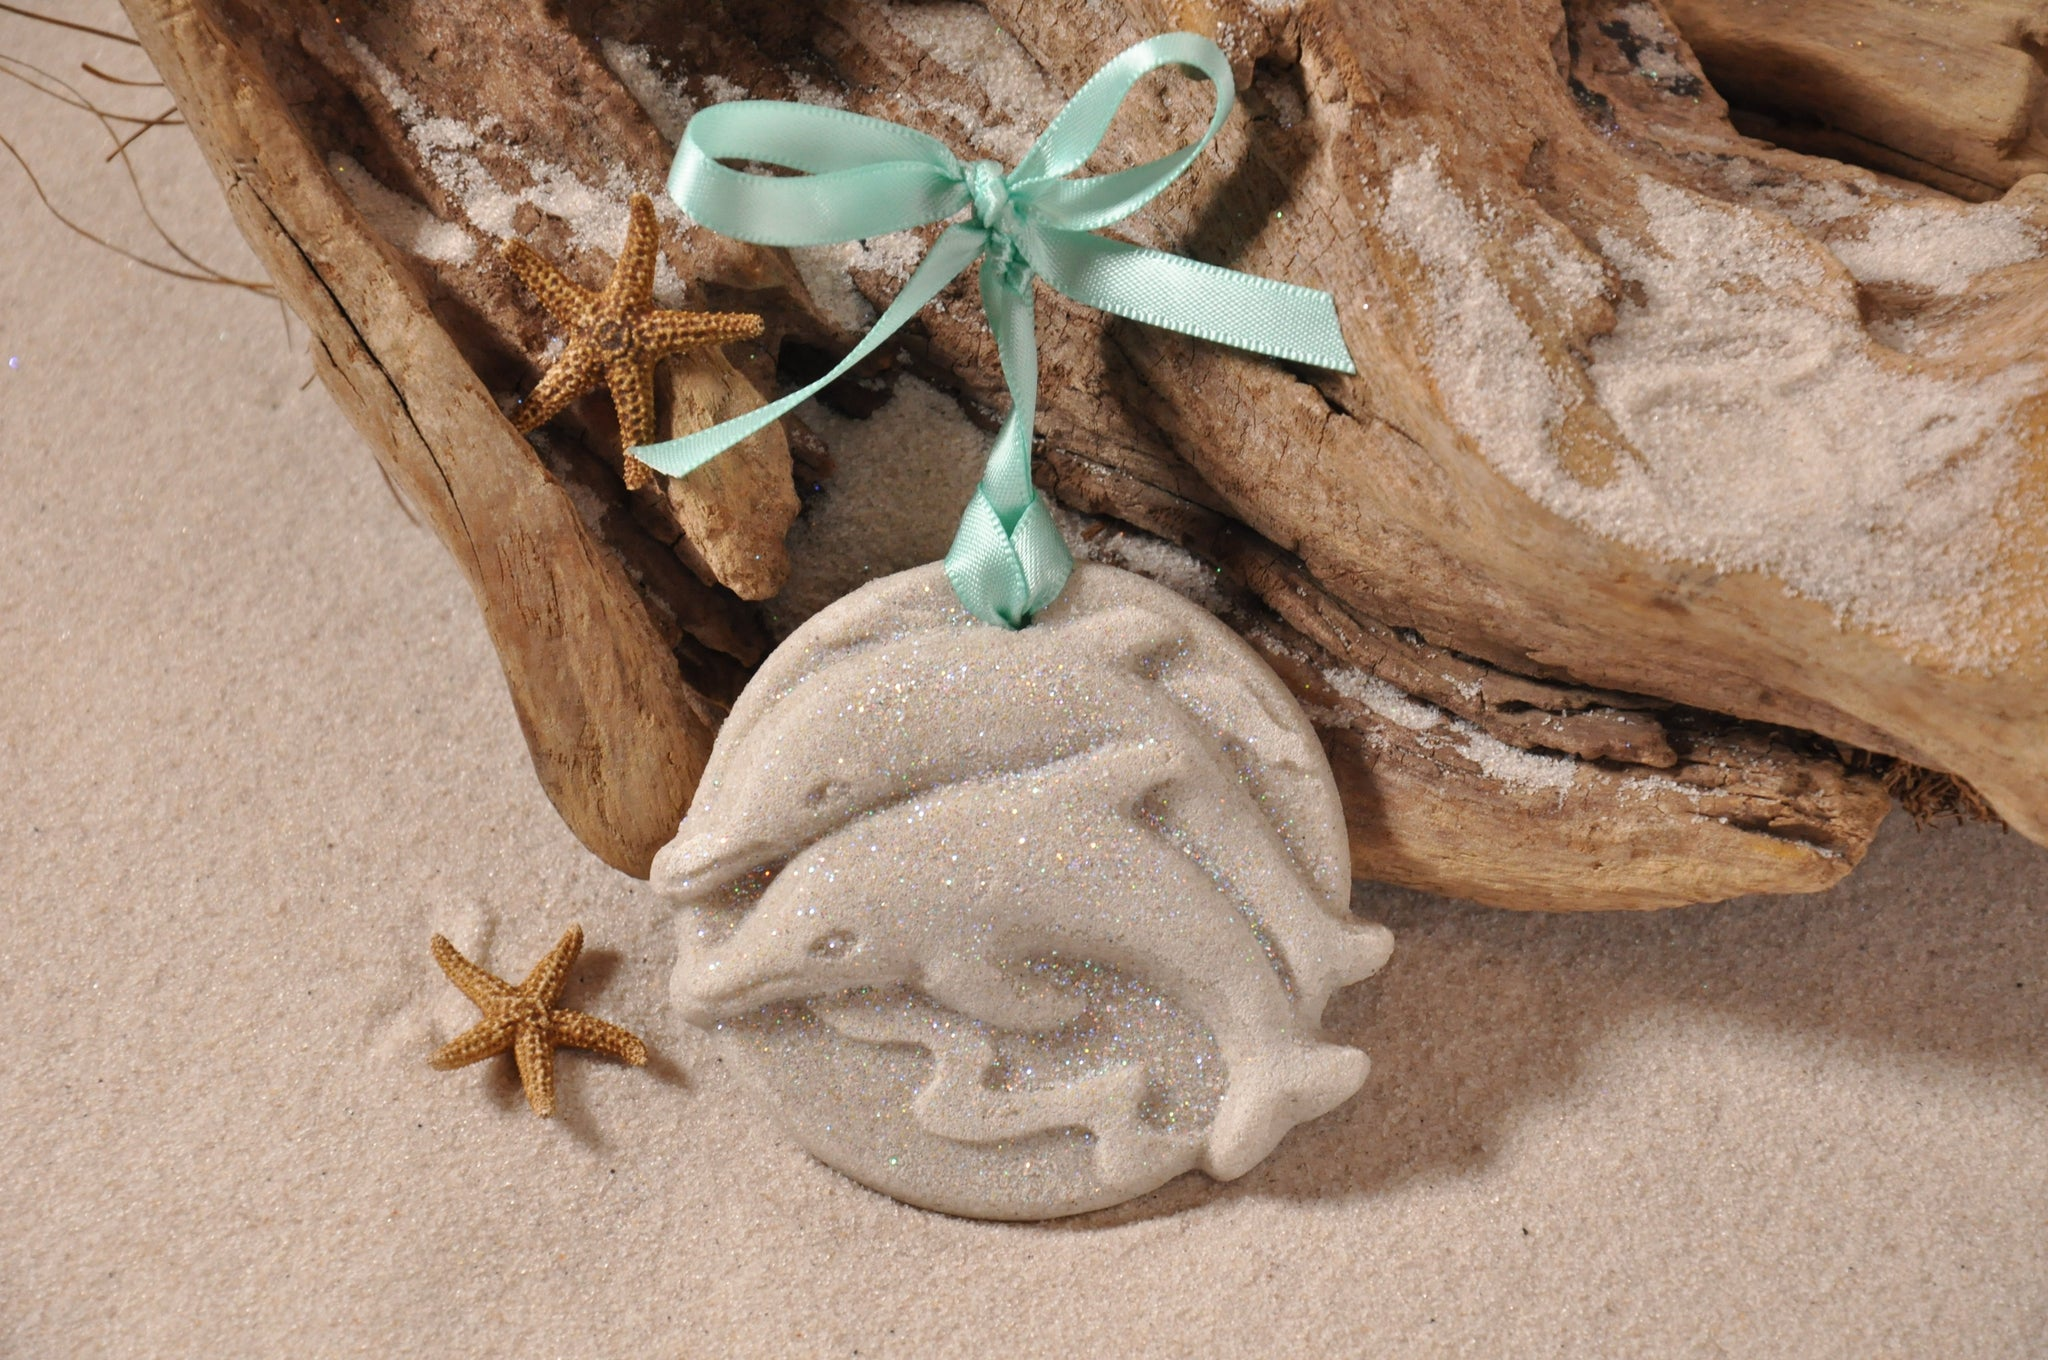 SAND ORNAMENT, CHRISTMAS TREE ORNAMENT, TROPICAL CHRISTMAS DECORATIONS, COASTAL ORNAMENT, SAND ORNAMENT, TROPICAL ORNAMENT, ARENOPHILE, SANTA, CHRISTMAS ORNAMENT, FLORIDA, DOLPHINS